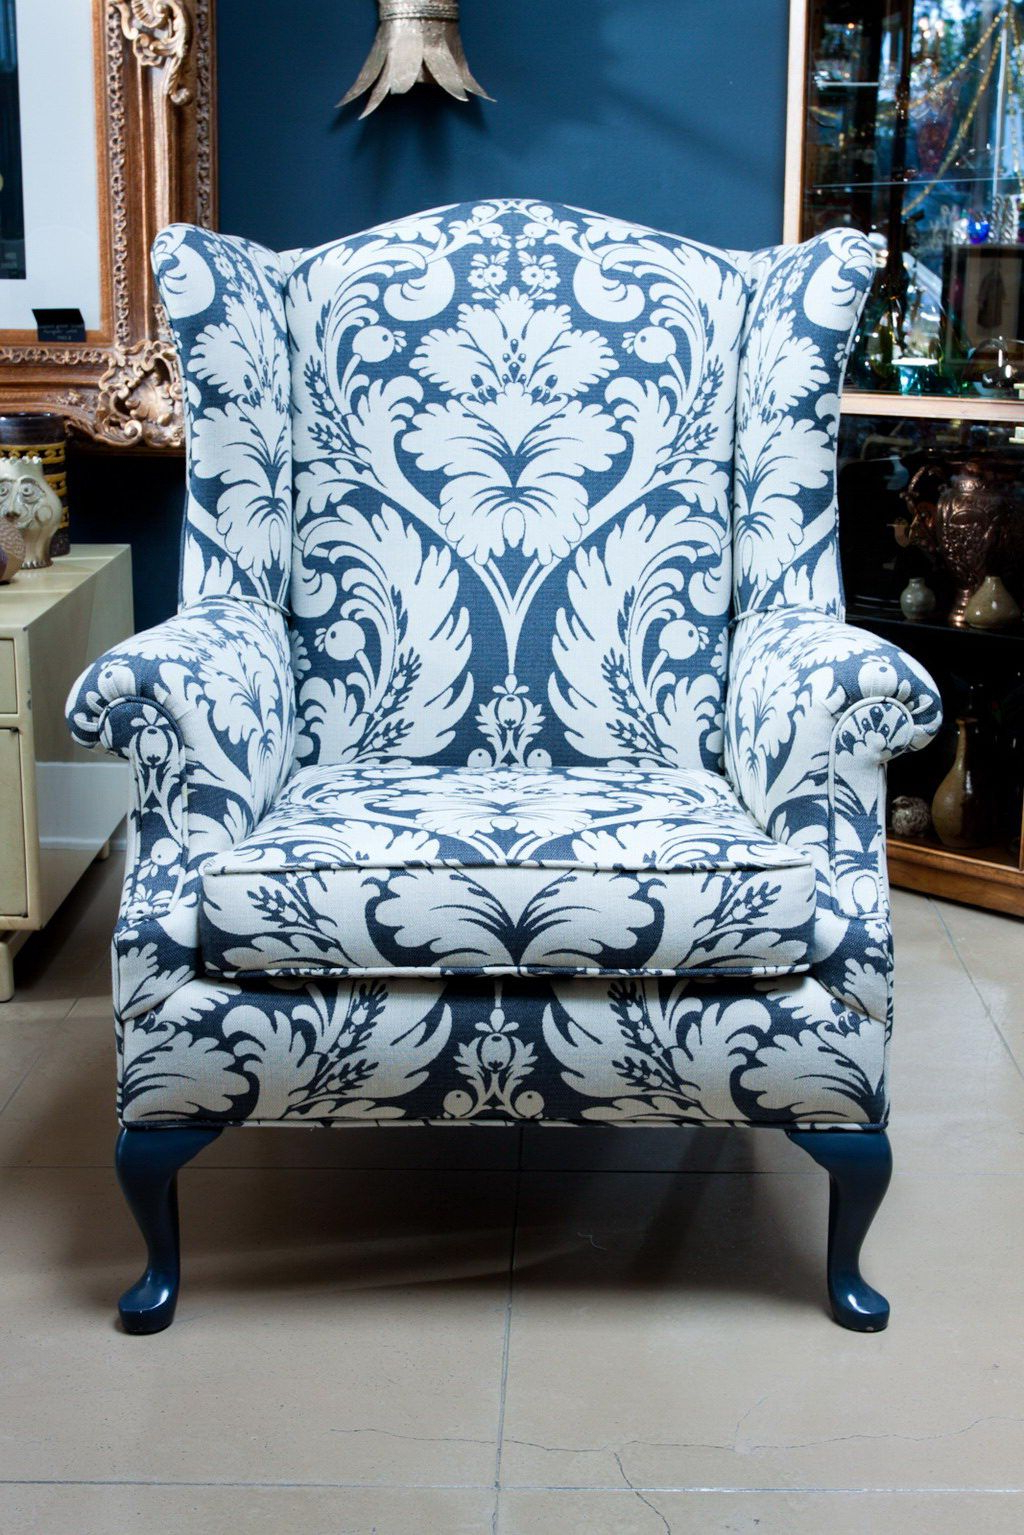 Busti Wingback Chairs Throughout Most Recently Released Pinrosa Maria Moutinho On Furniture Inspirations (View 19 of 20)